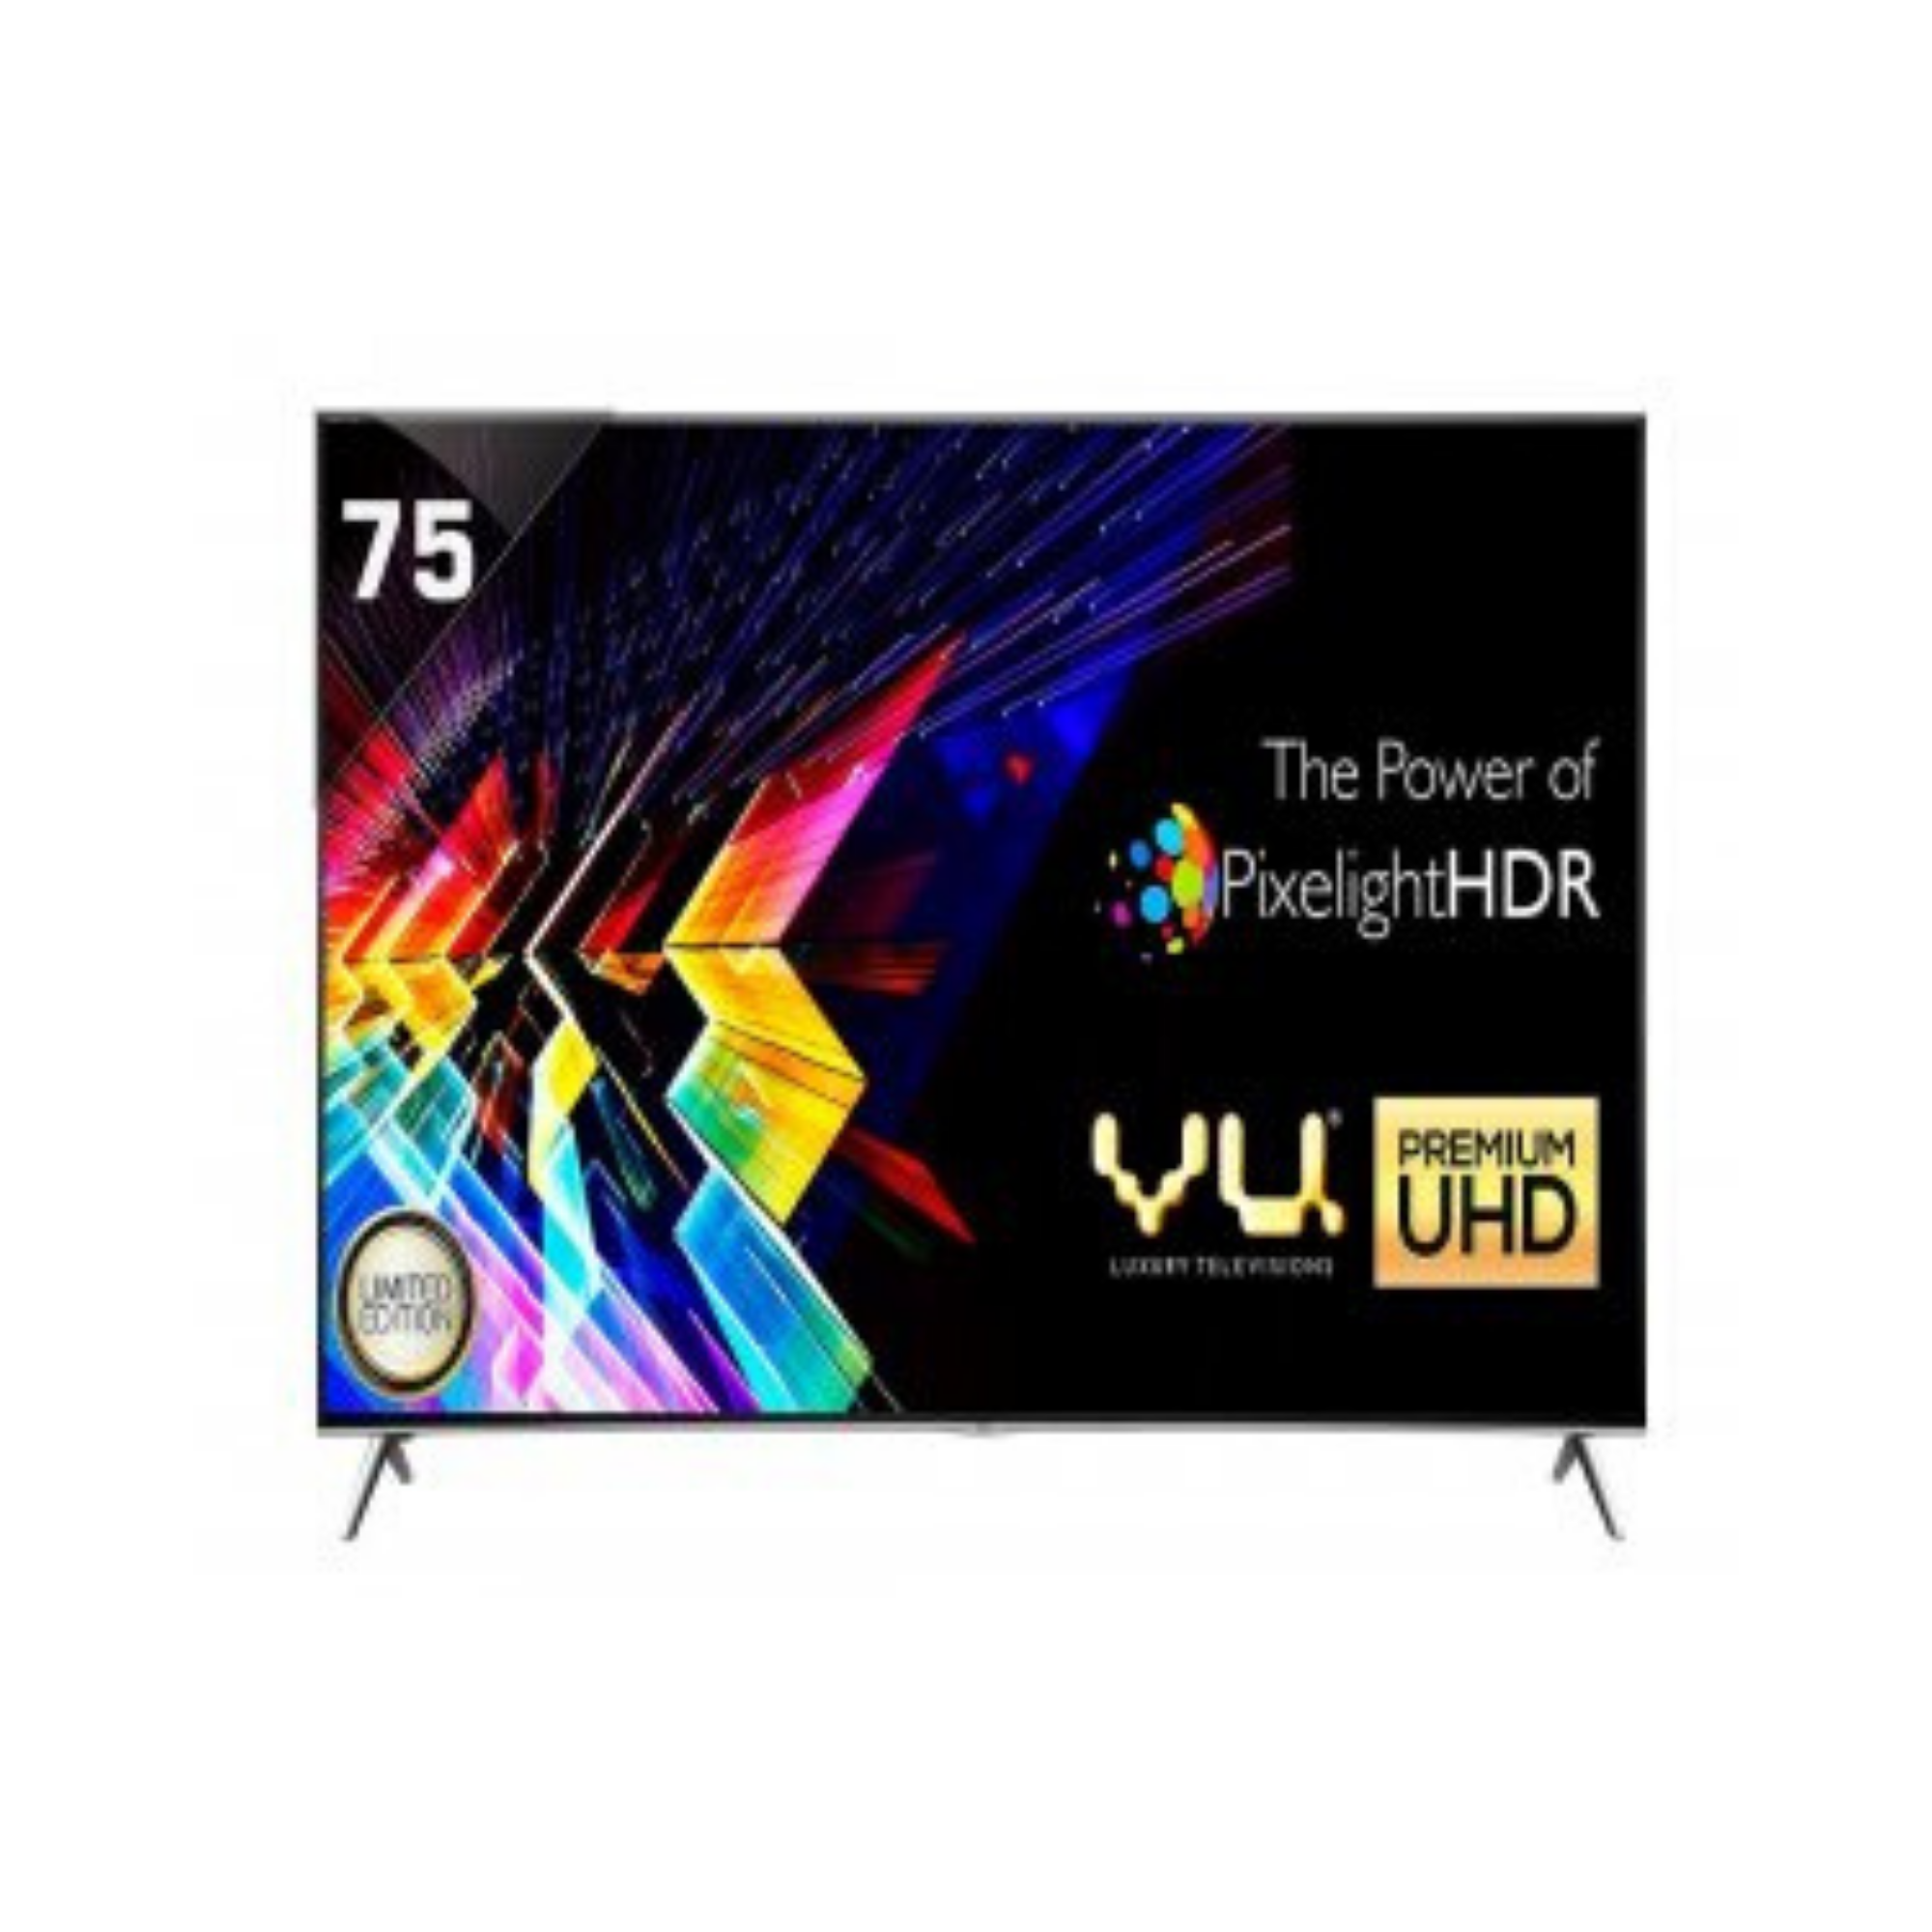 VU H75K700 190cm 75-inch 4K Ultra HD Smart LED TV